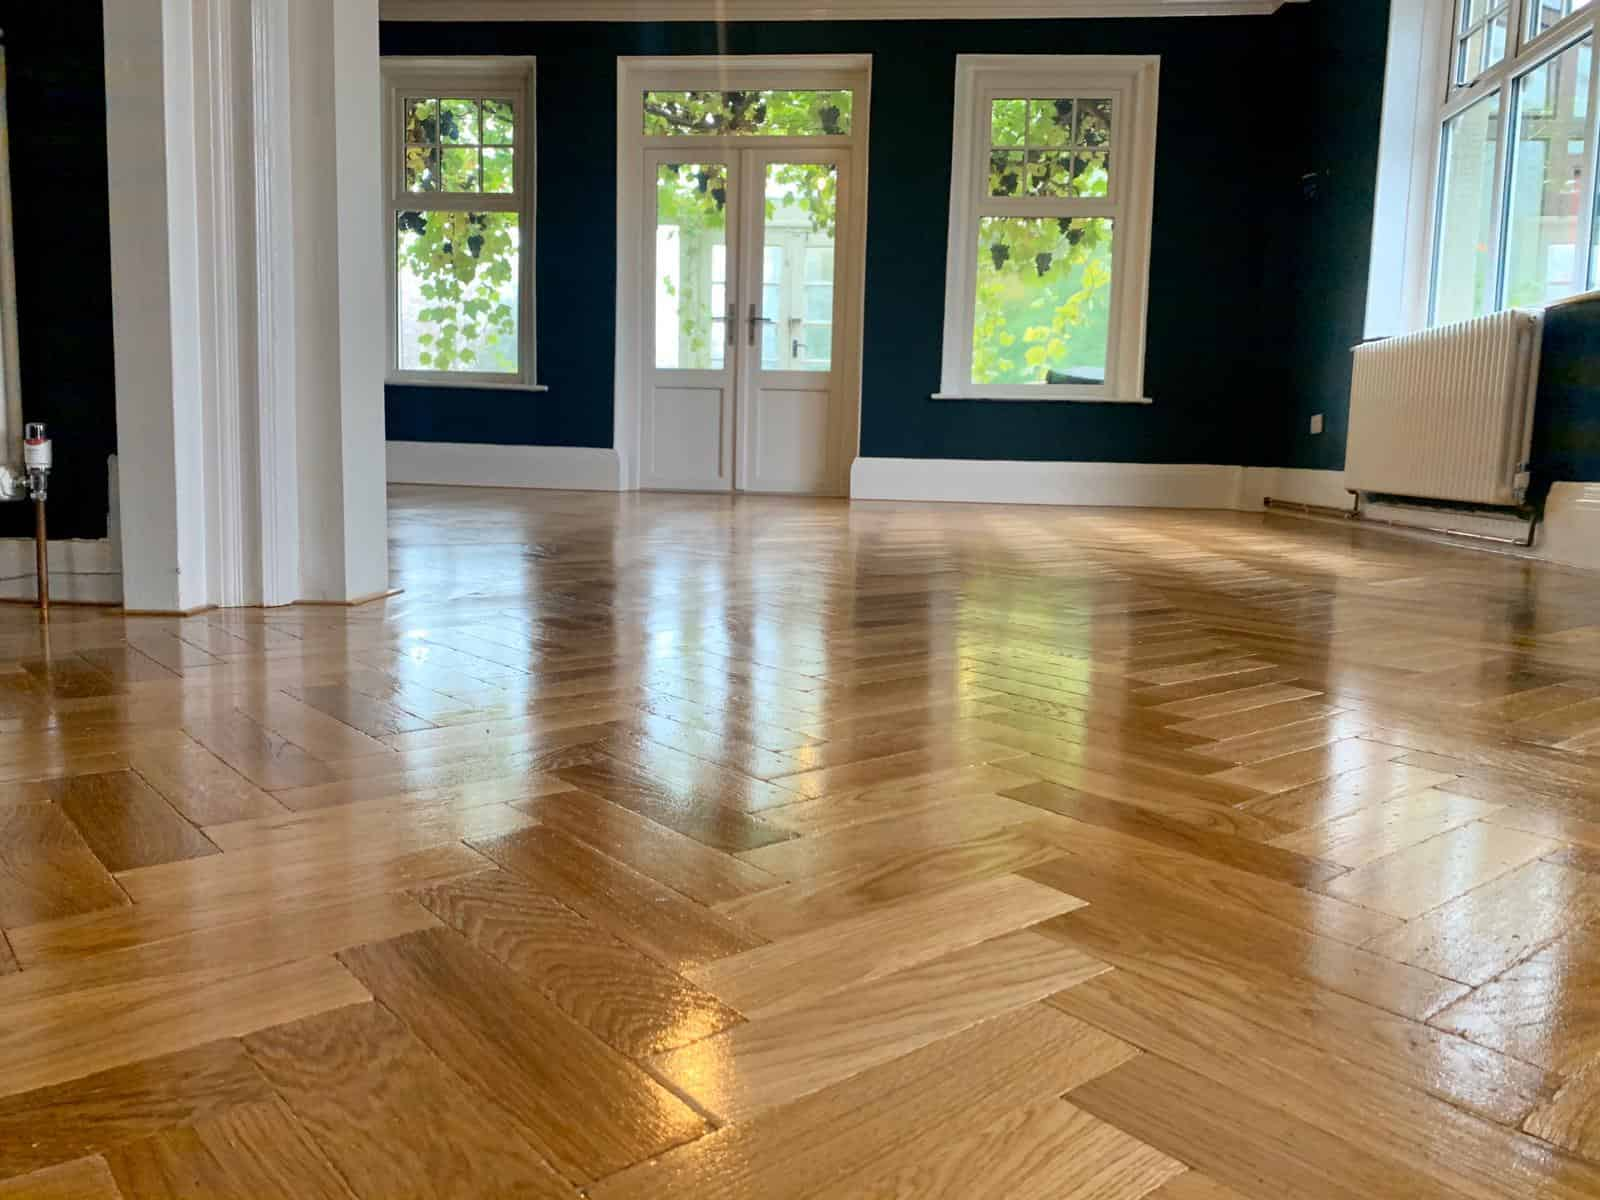 Tumbled Oak Parquet Flooring for a Home with Kids & Pets 3